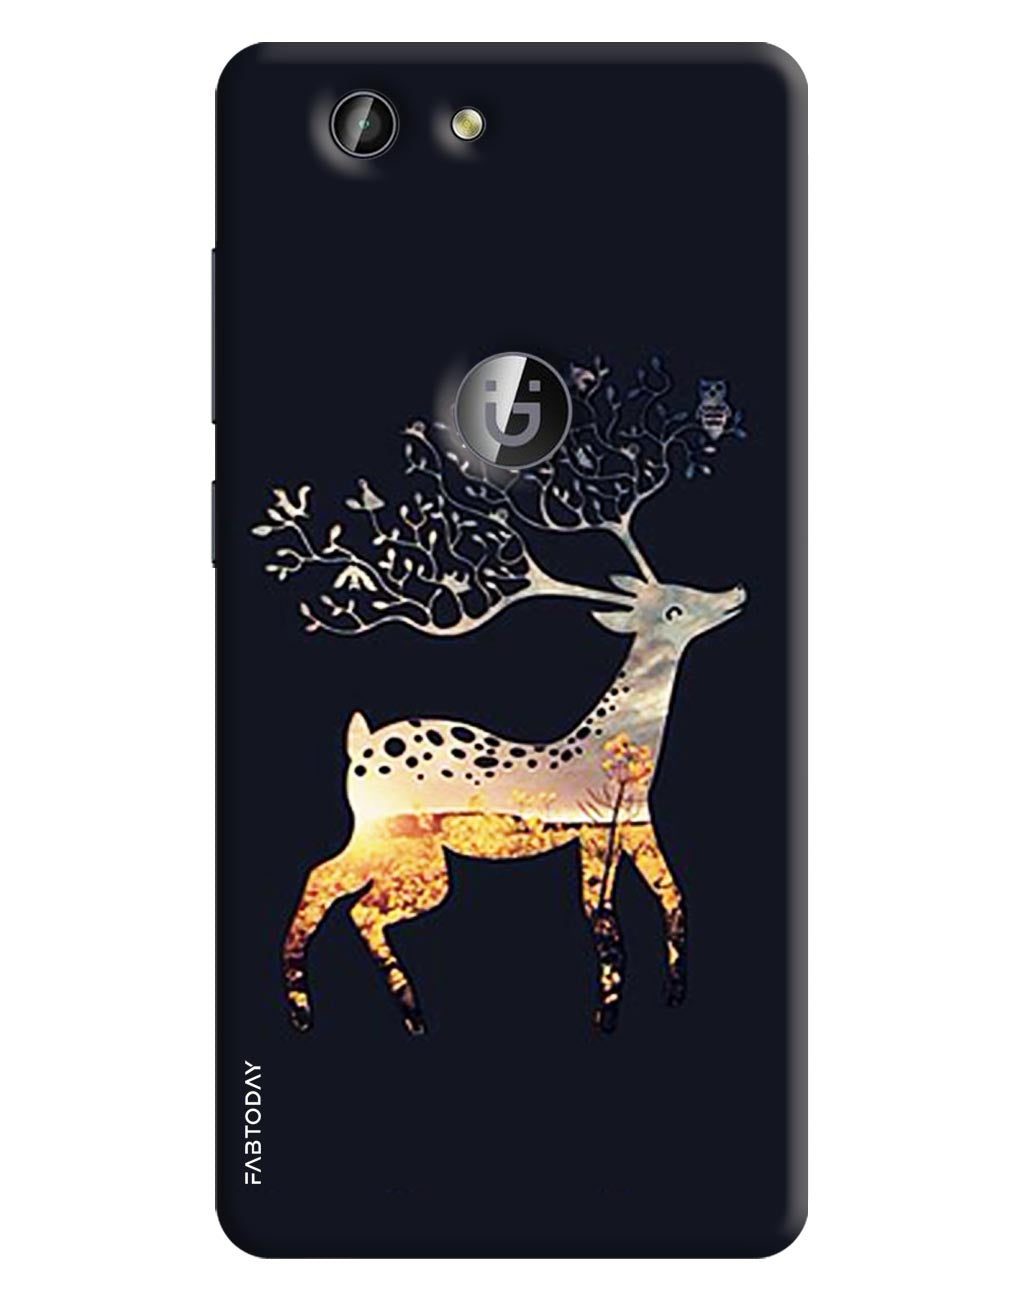 Deer Back Cover for Gionee F103 Pro